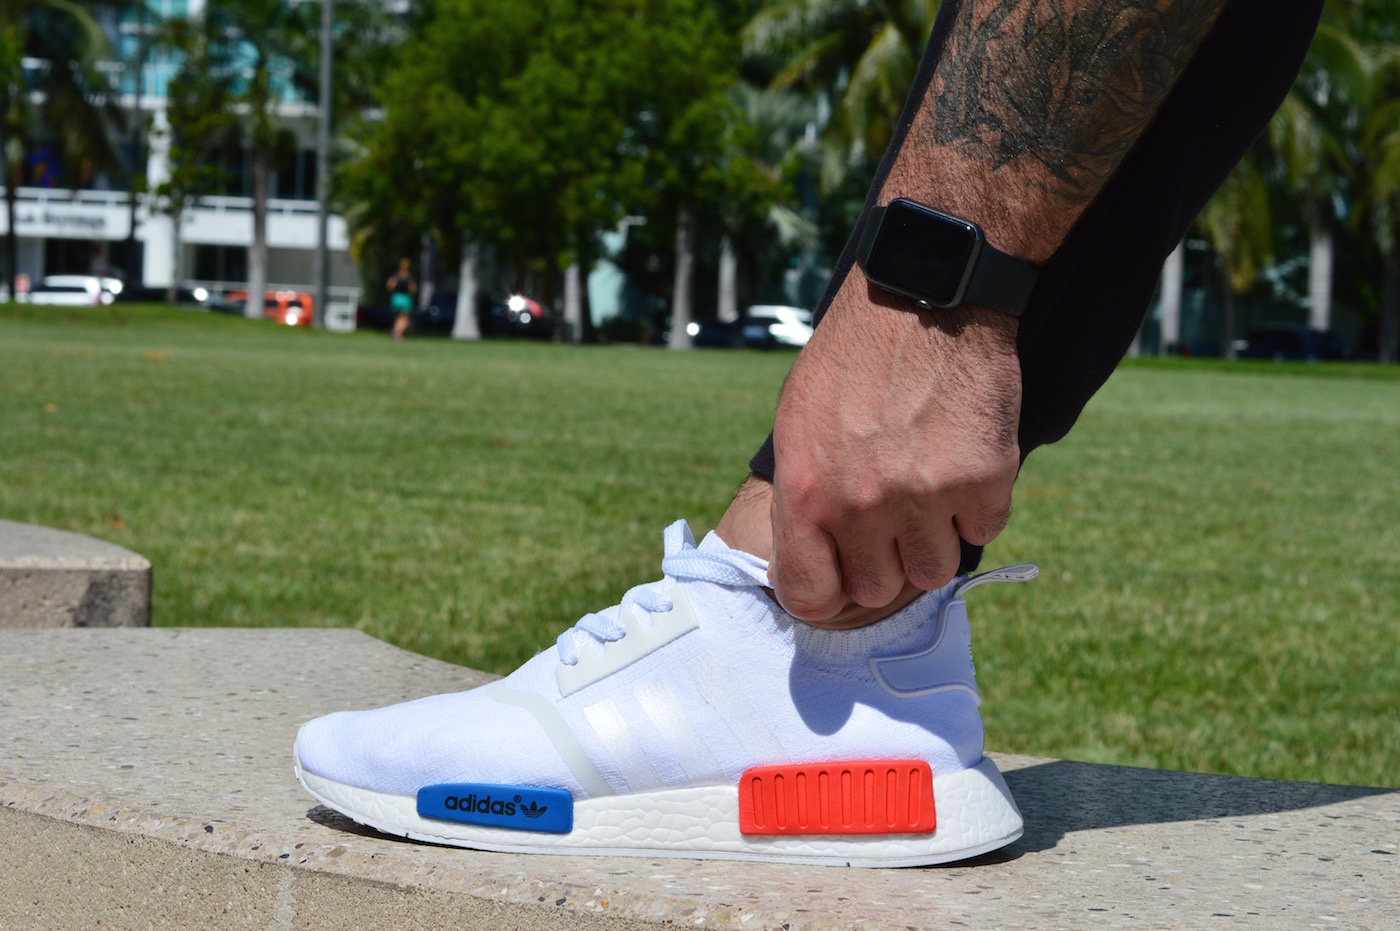 adidas NMD R1 Primeknit On Feet Side View White Red Blue